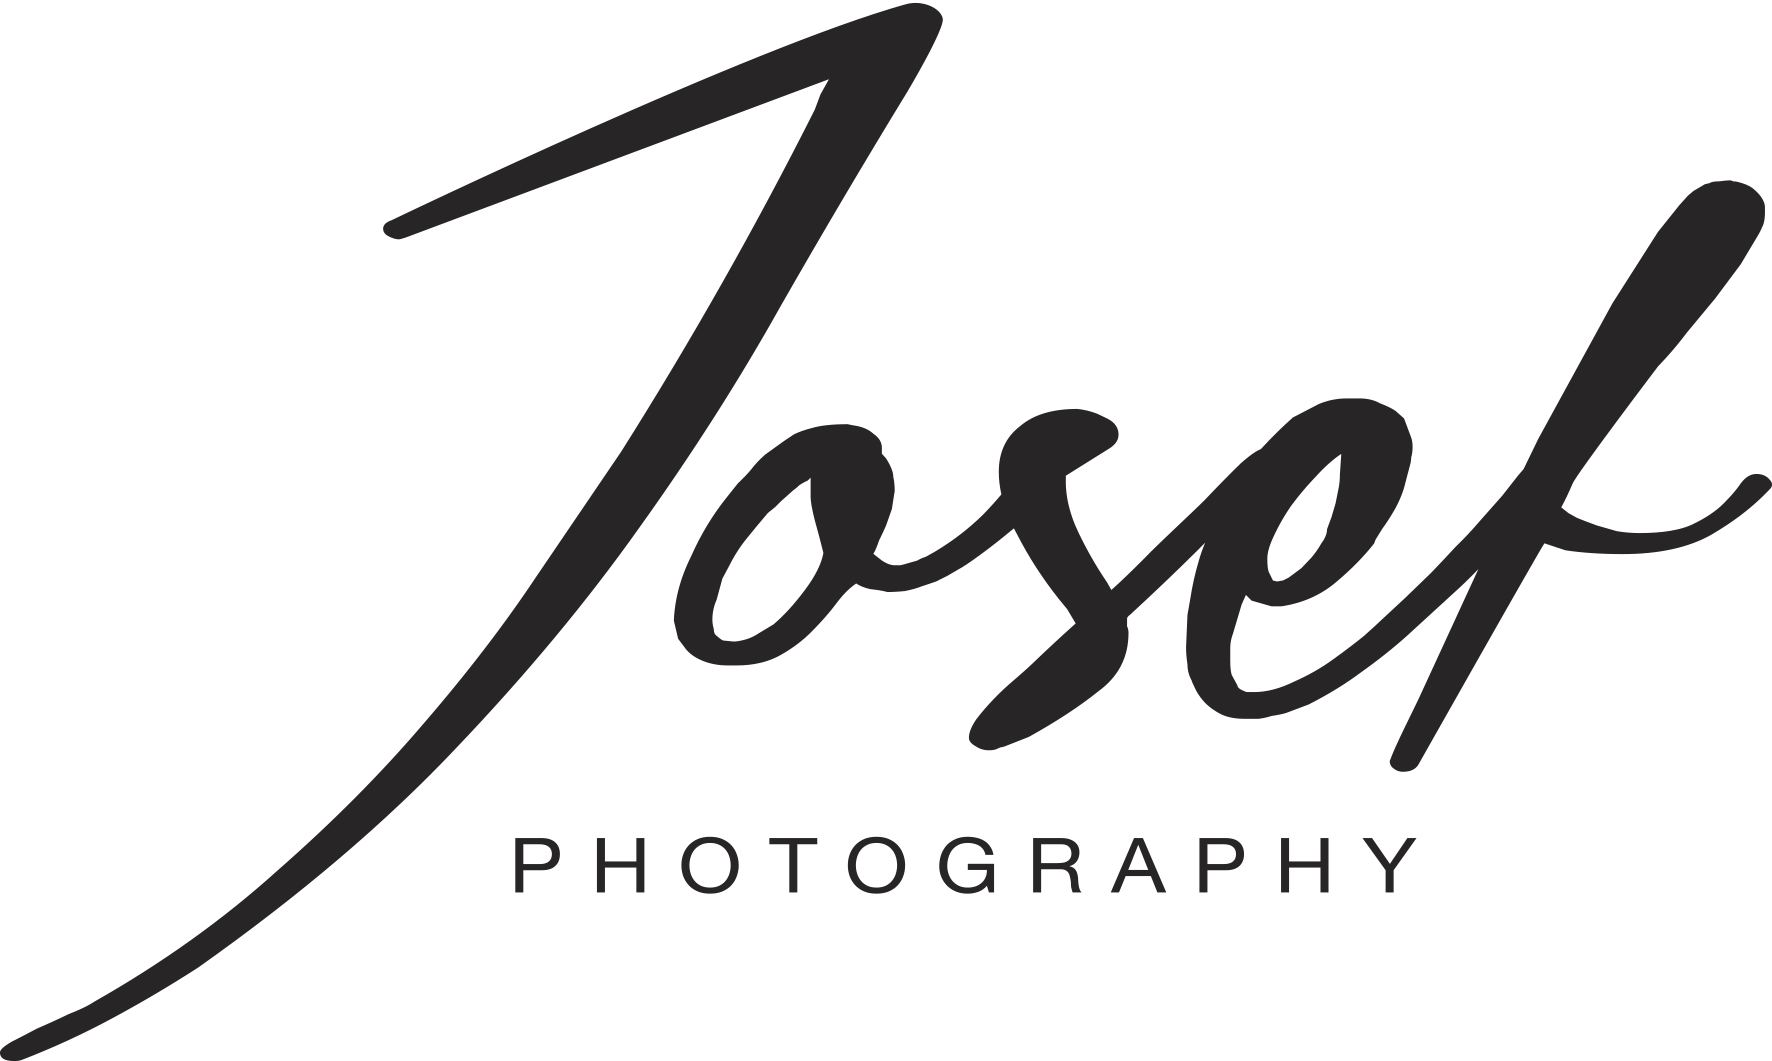 Josef photography